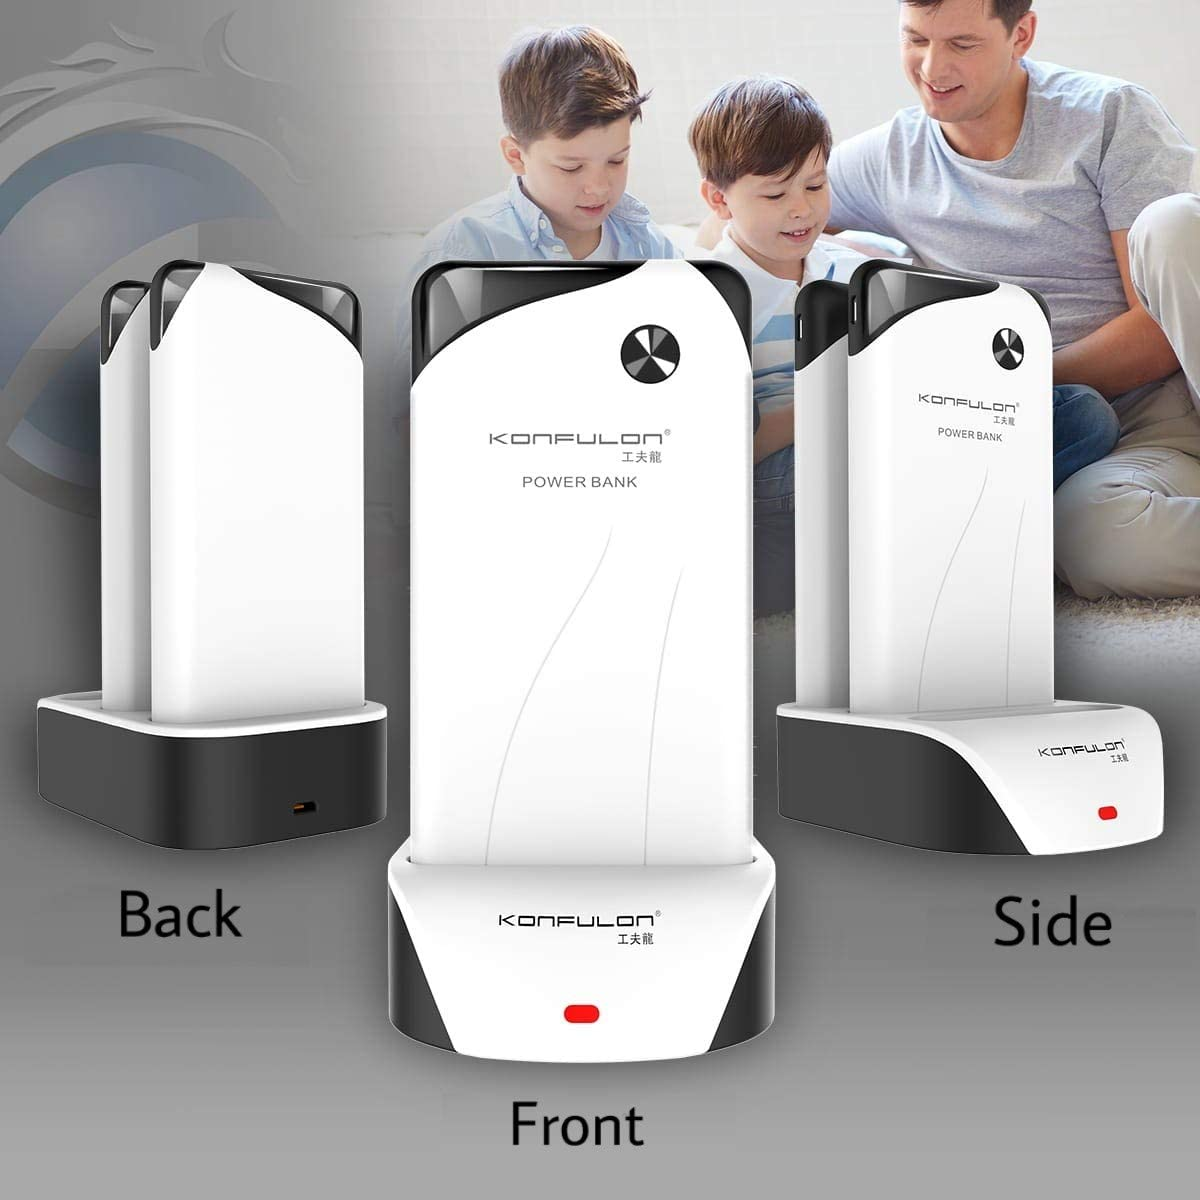 Huawei Smartphones and Tablet Devices. Slim Compact Power Bank for iPhone Samsung KONFULON Family Pack Power Bank 30000mAh LCD Display